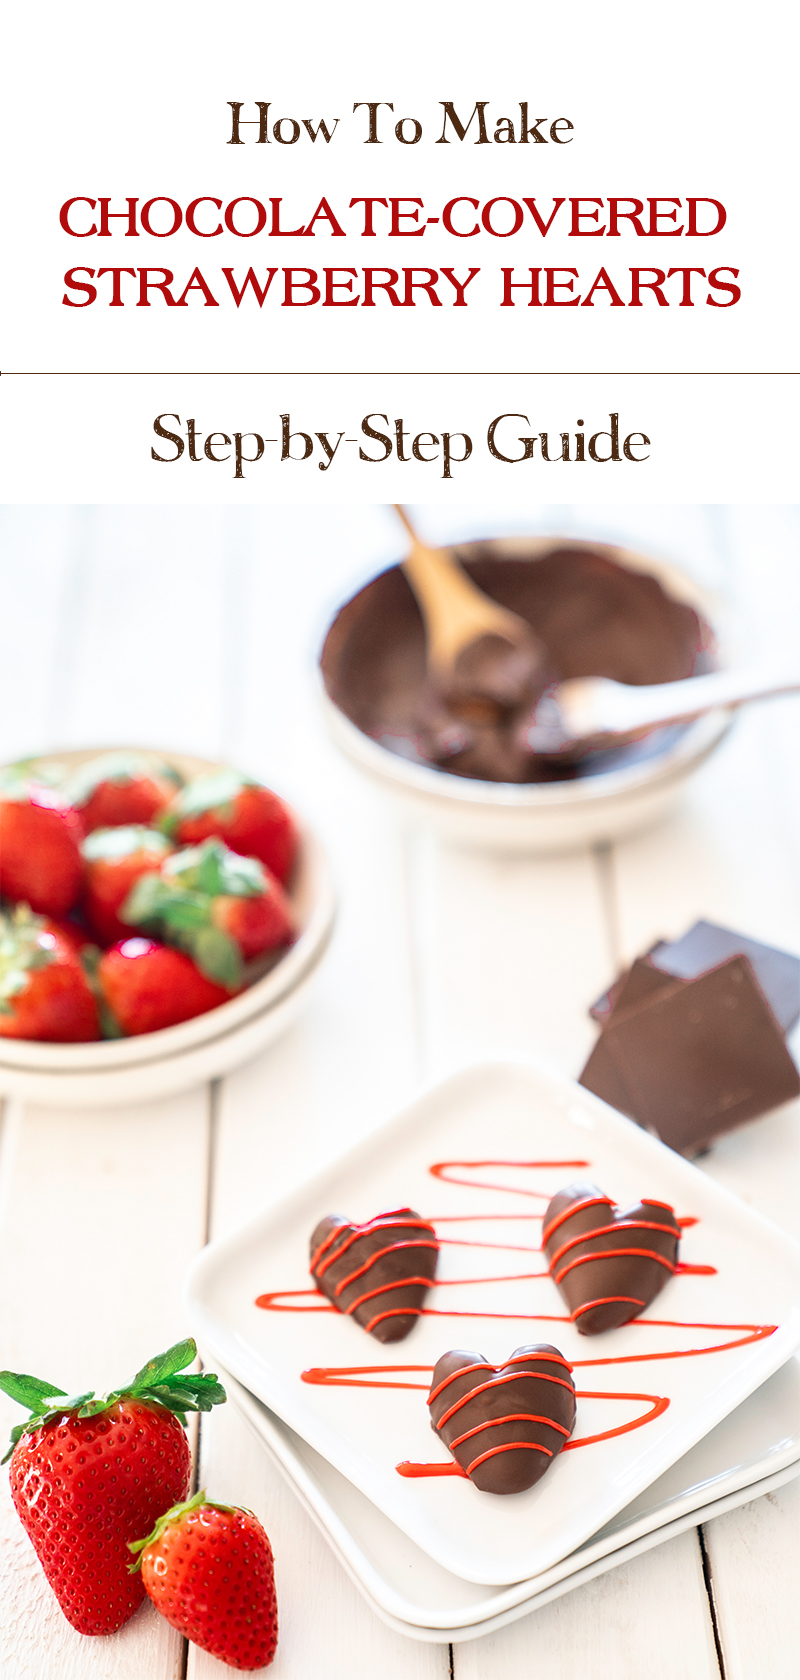 Step-by-Step-Guide-To-Making-Chocolate-Covered-Strawberry-Hearts